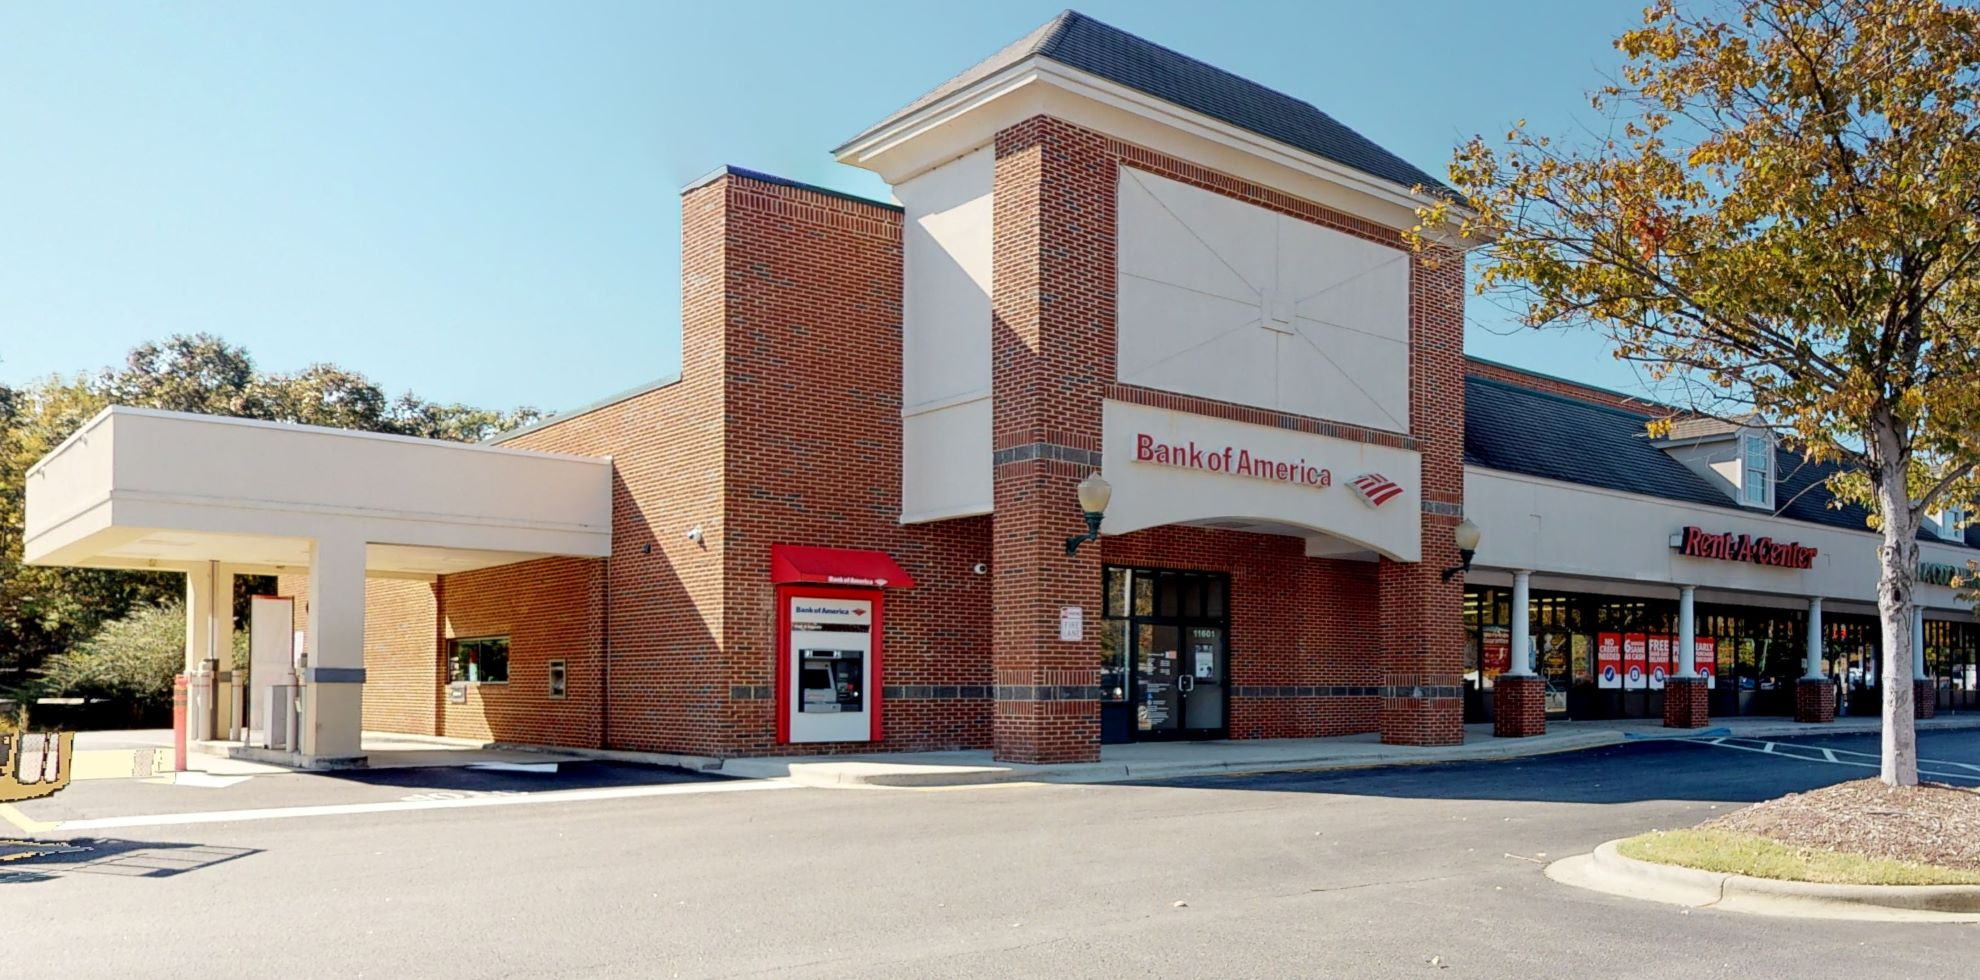 Bank of America financial center with walk-up ATM | 11601 US 70 Business Hwy W, Clayton, NC 27520